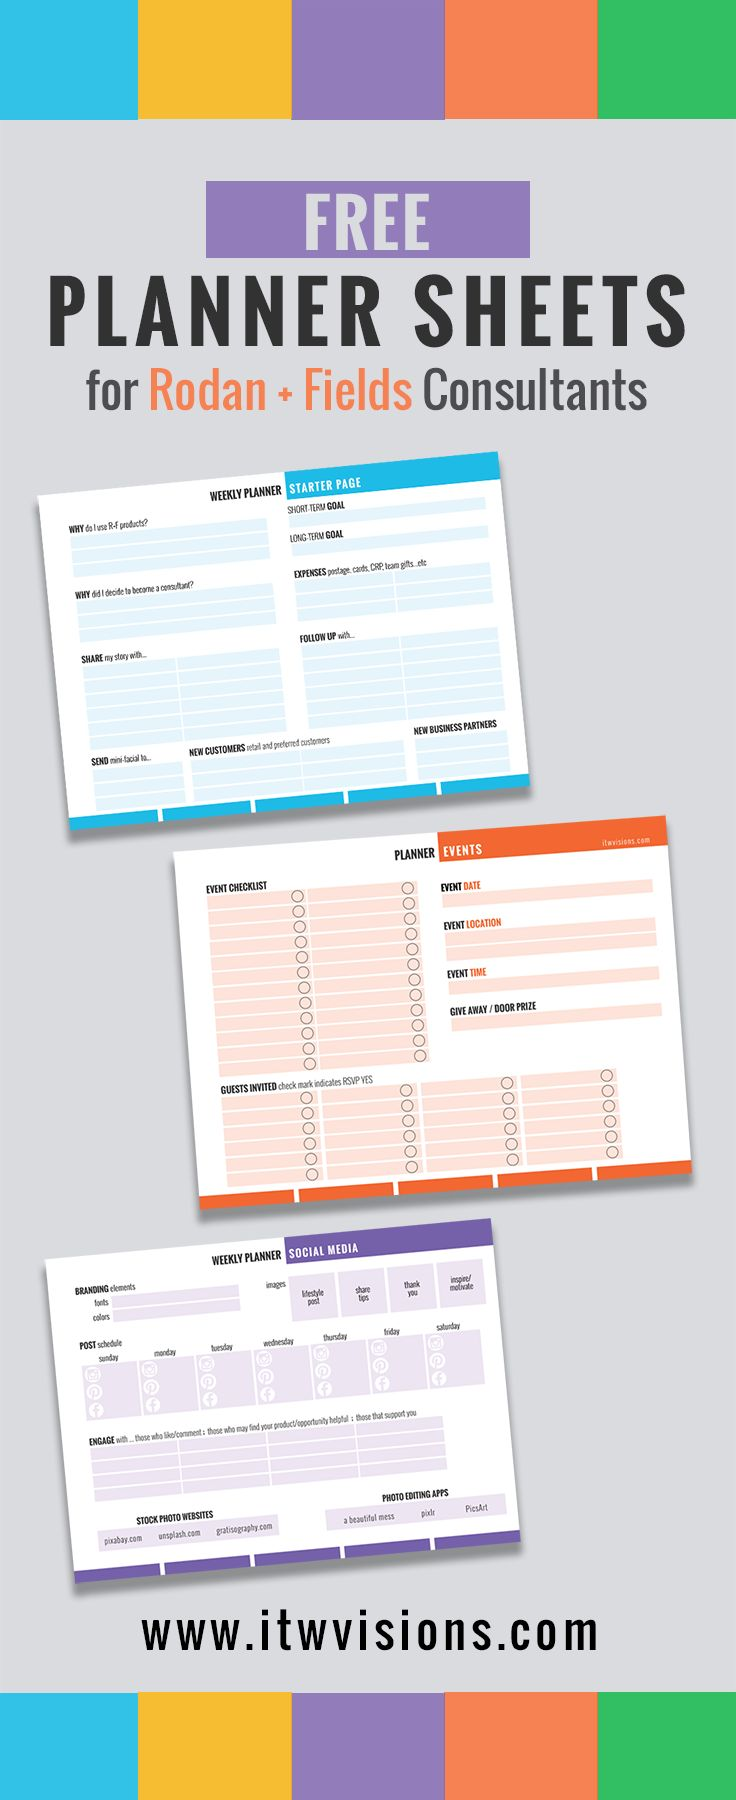 Rodan and Fields Business Checklist and Planner Sheets, Calendar, Organizer, free download, organize, grow your business, build a team, gain new business partners, direct sales, marketing for direct sales, marketing materials for direct sales consultants, template, templates, planner, planning, how to stay organized and grow your business.